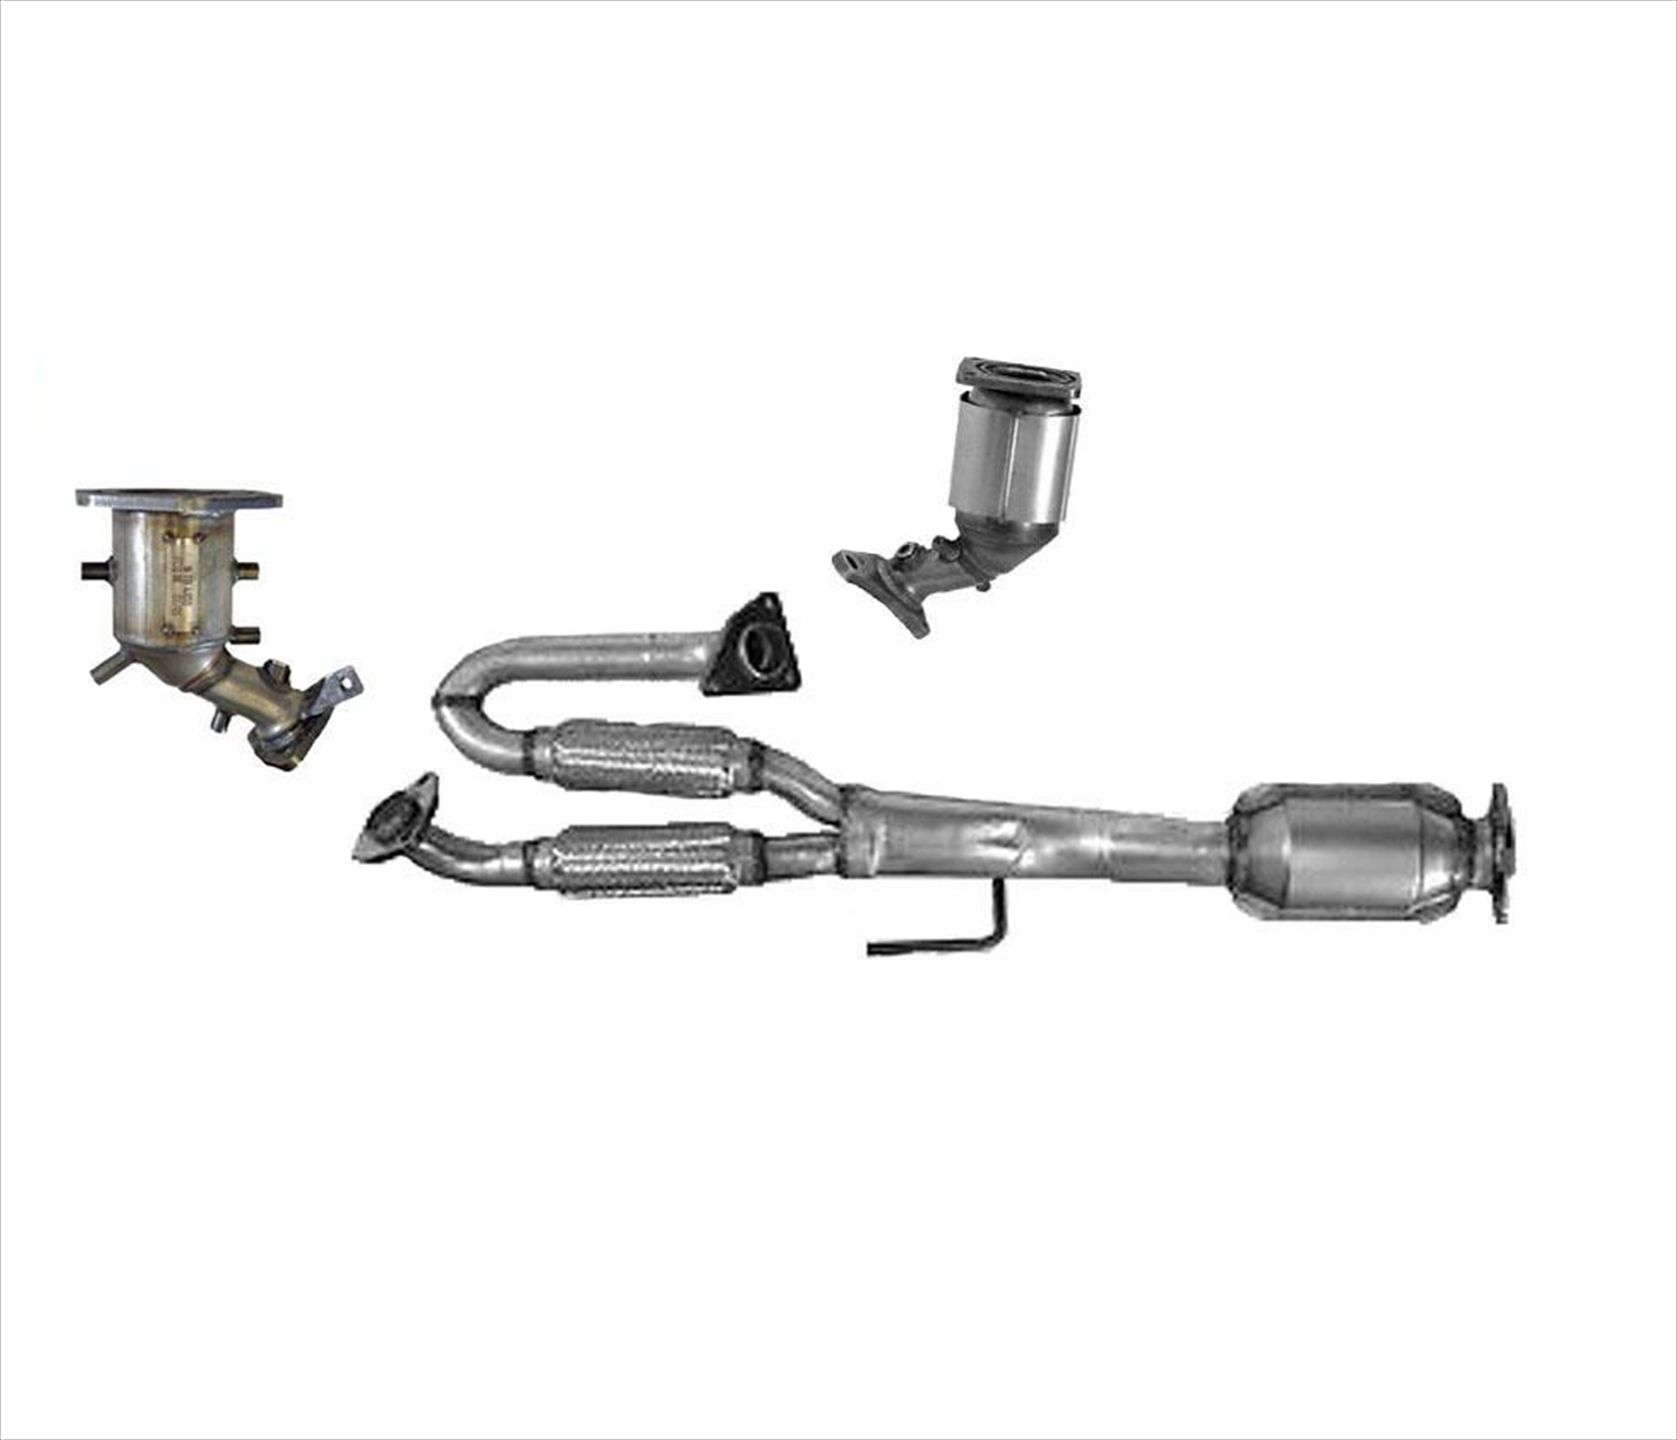 Engine Y Flex Pipe With (3) Catalytic Converters for 09-14